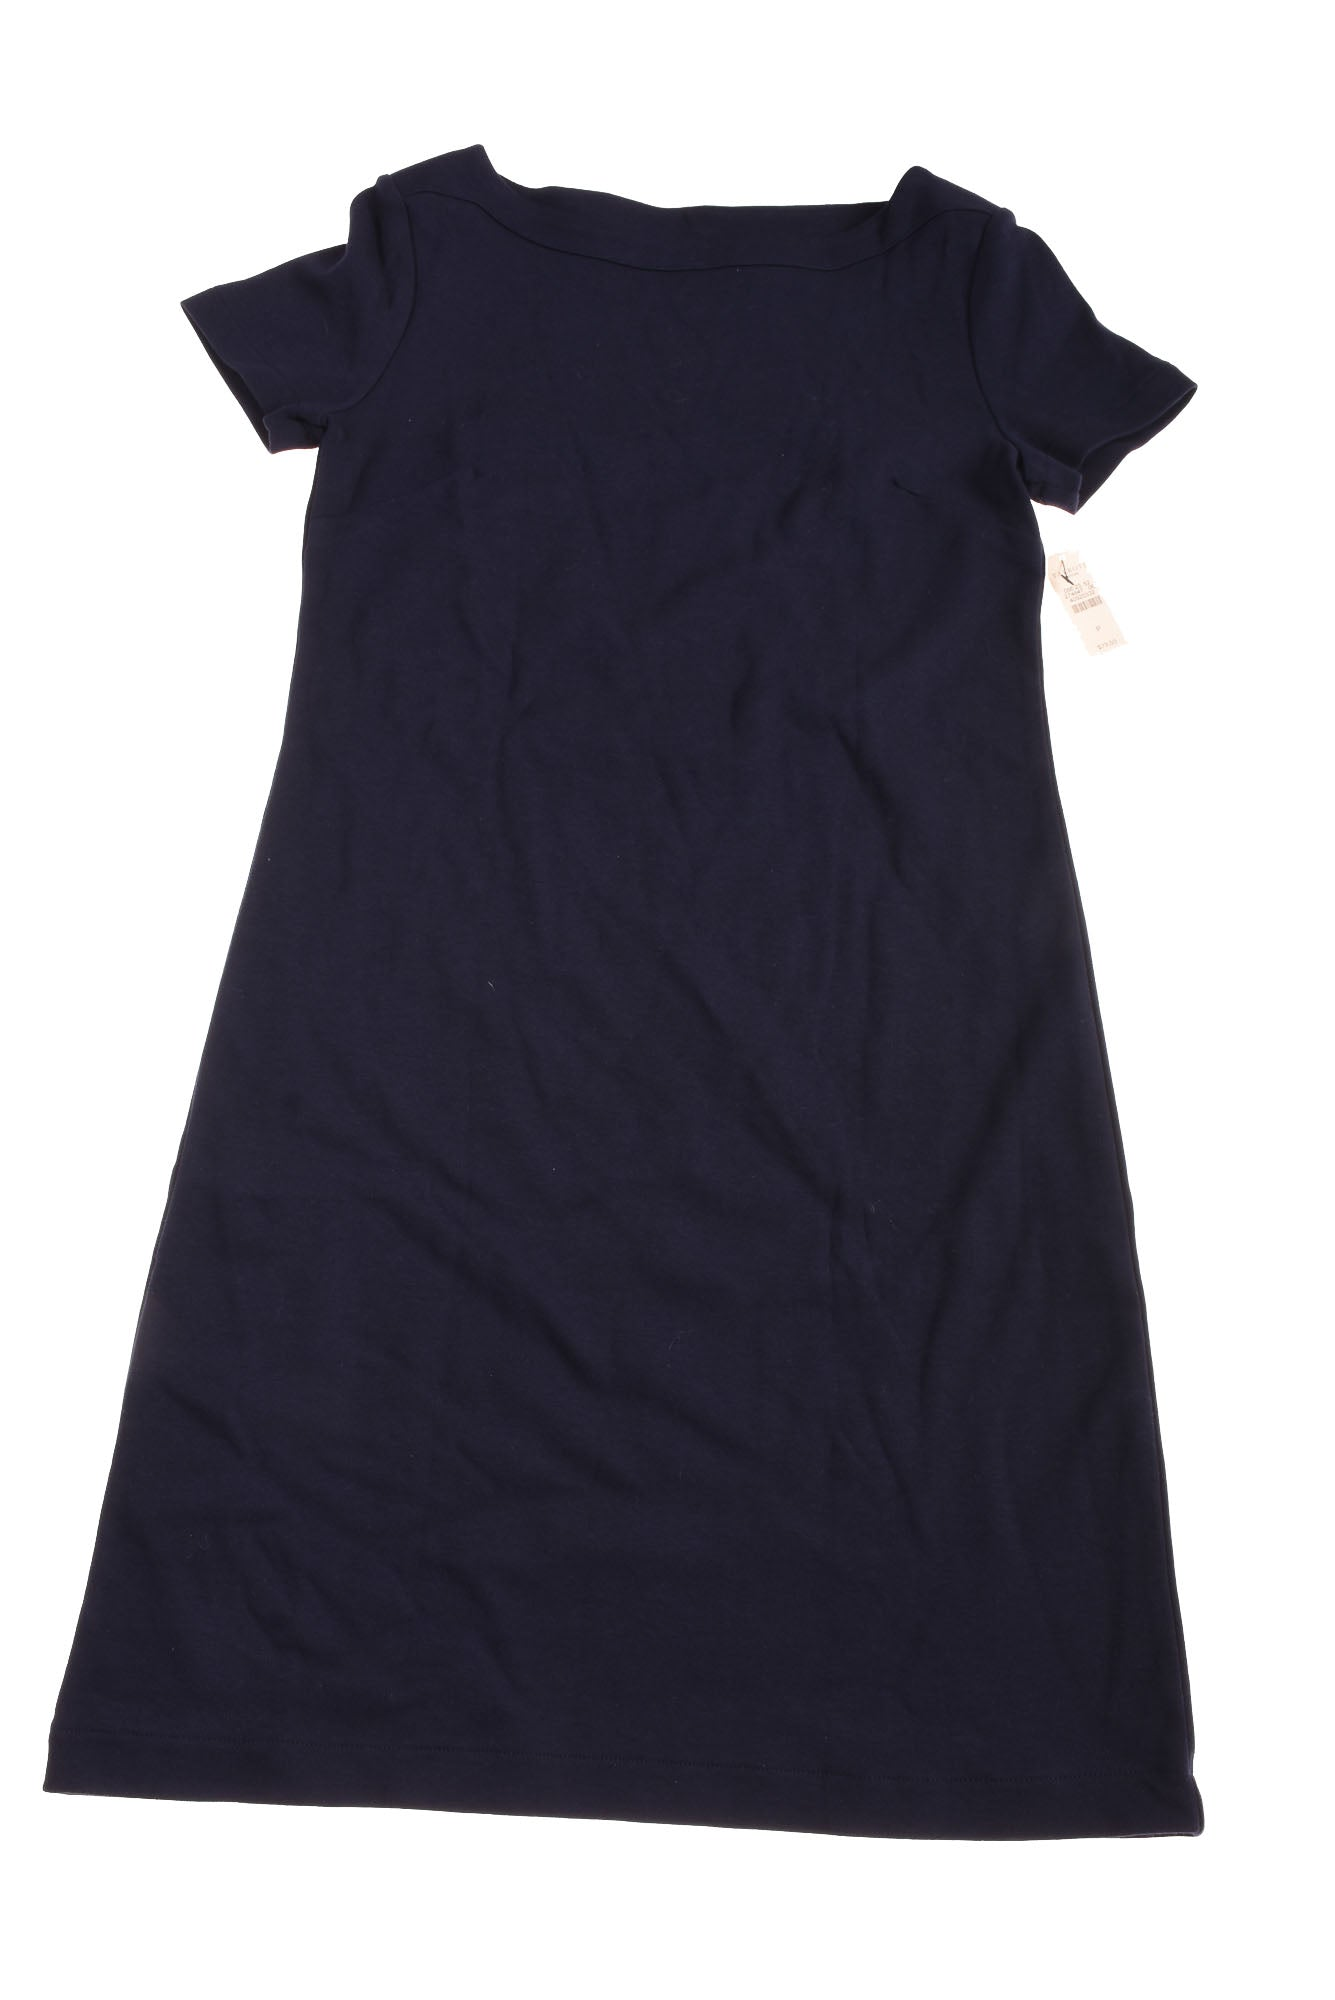 ef1bf5efcd9 NEW Talbots Women s Petite Dress Navy Blue - Village Discount Outlet